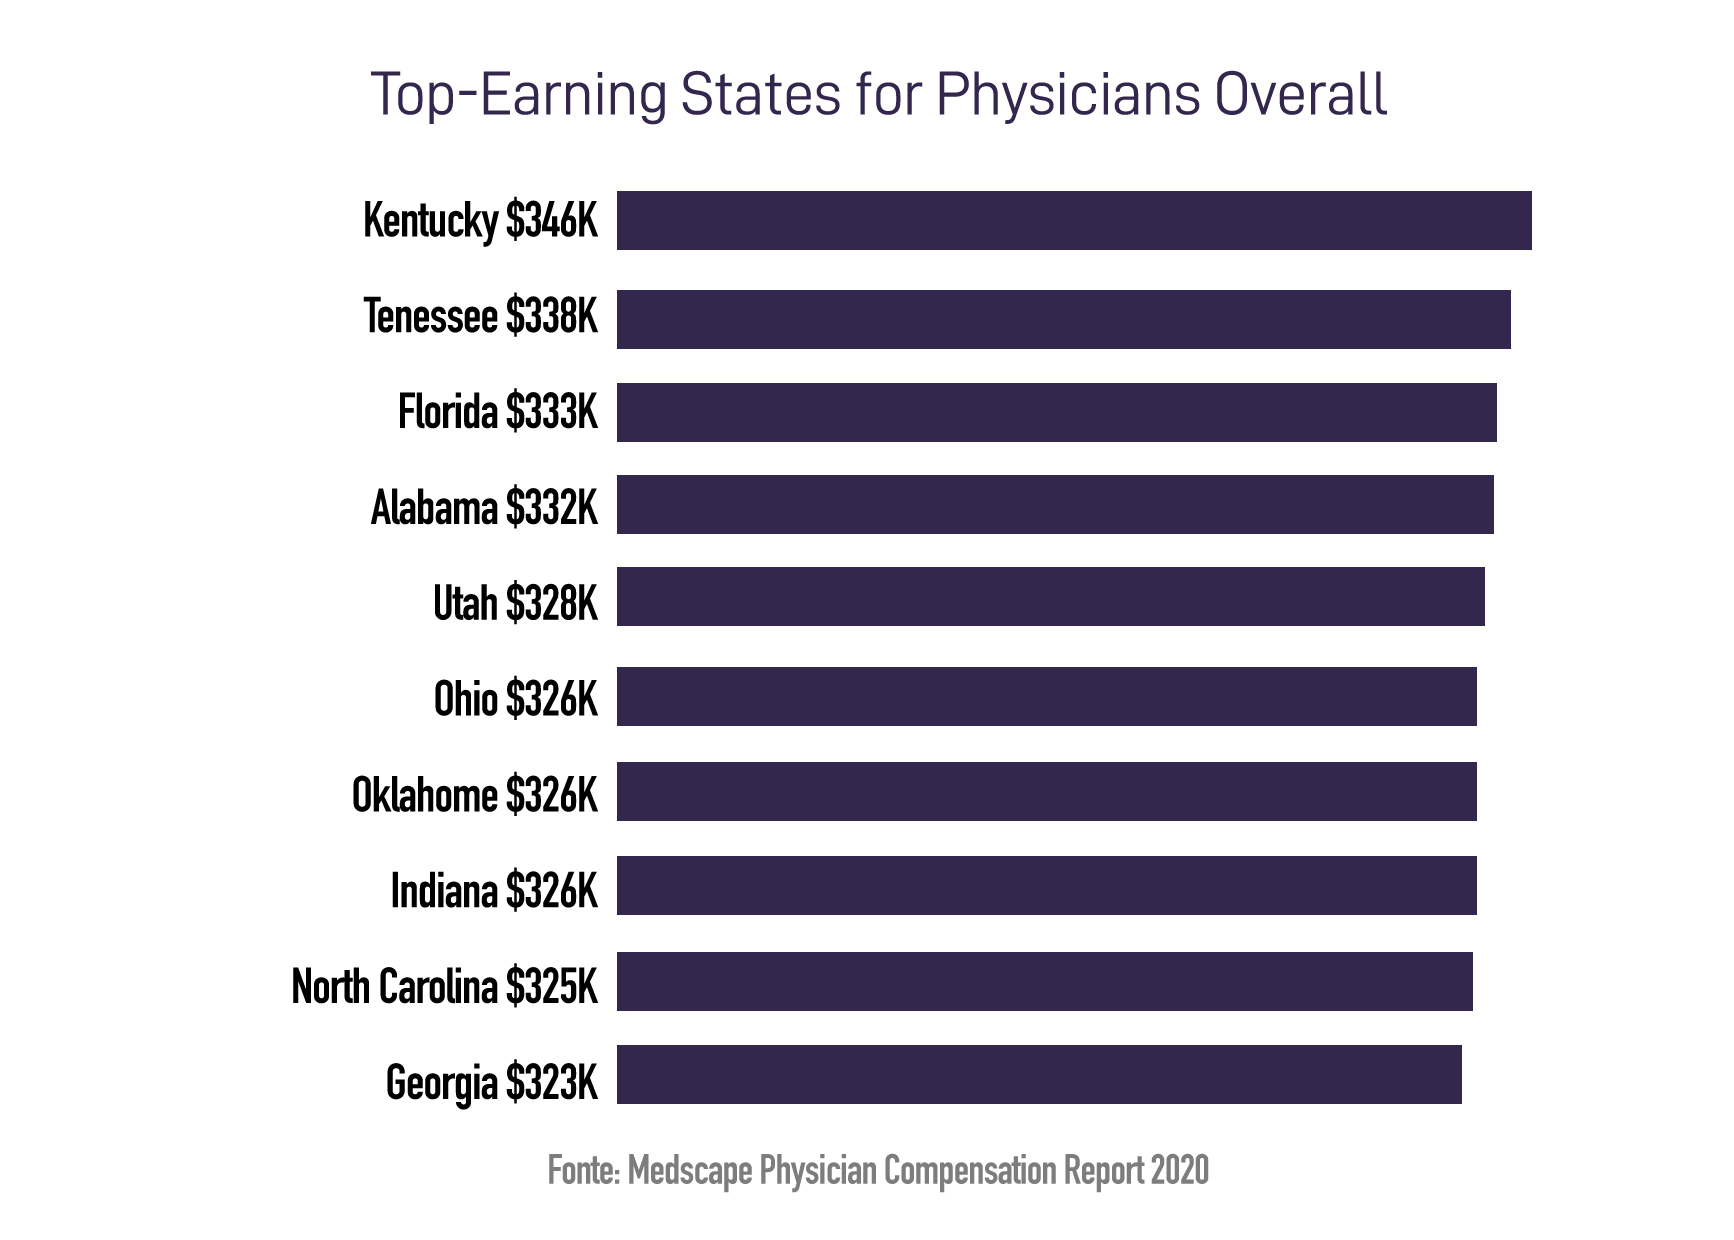 Top-Earning States for Physicians Overall